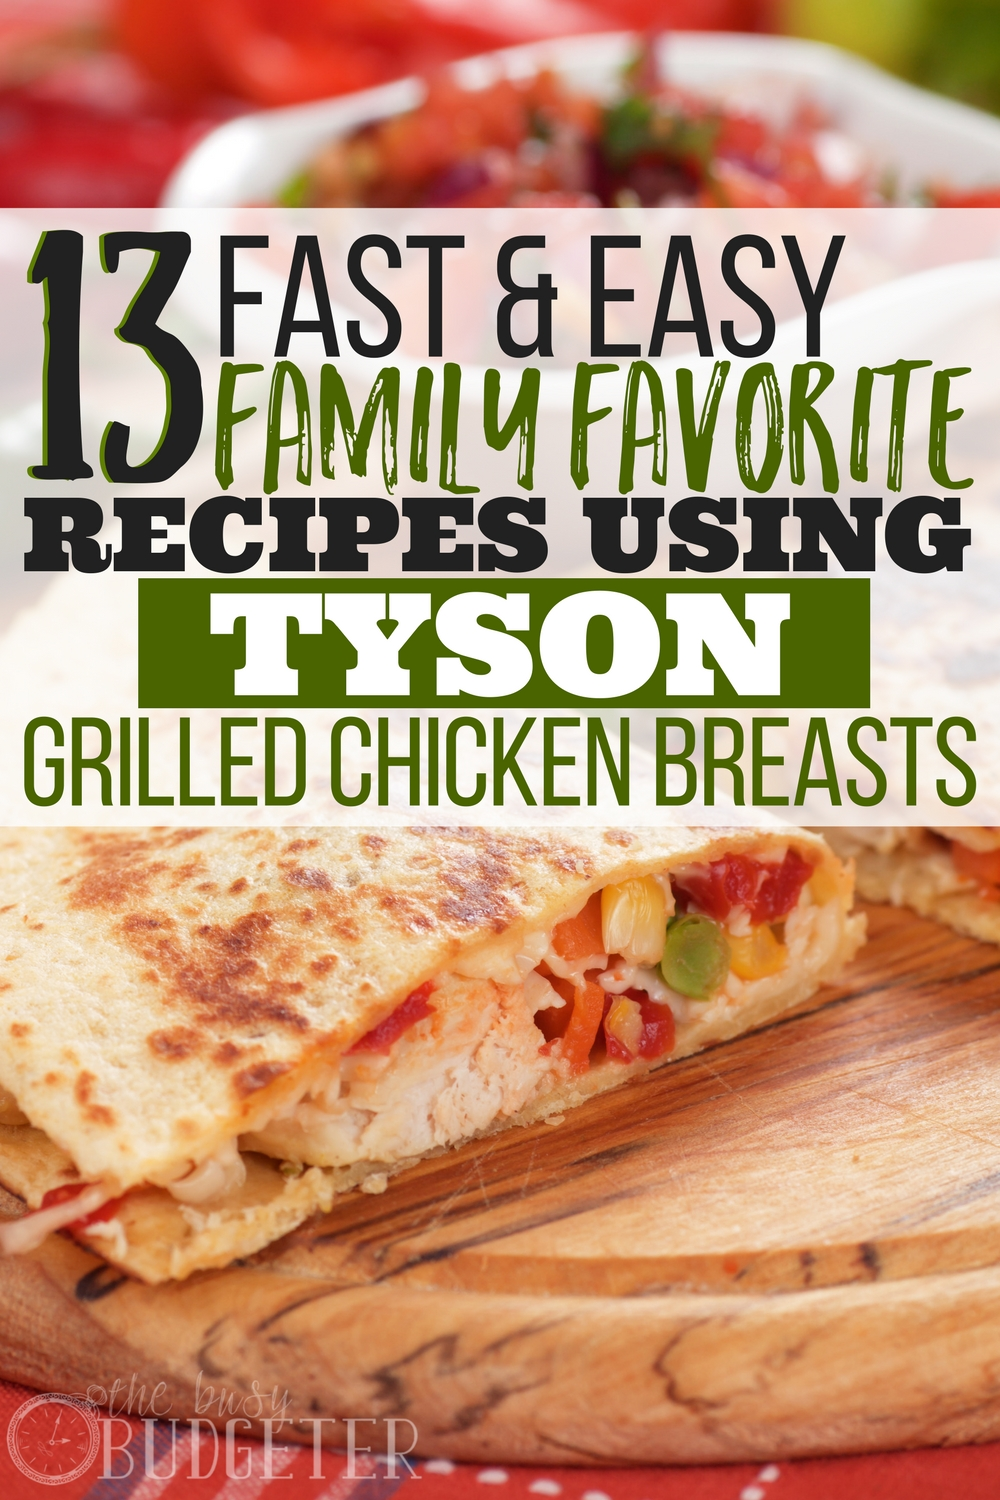 Fast and easy is an understatement! Not only are these super simple recipes easy and cheap to make but my family loves them. So glad I found this, total game changer for when I need diner ideas on busy nights!!